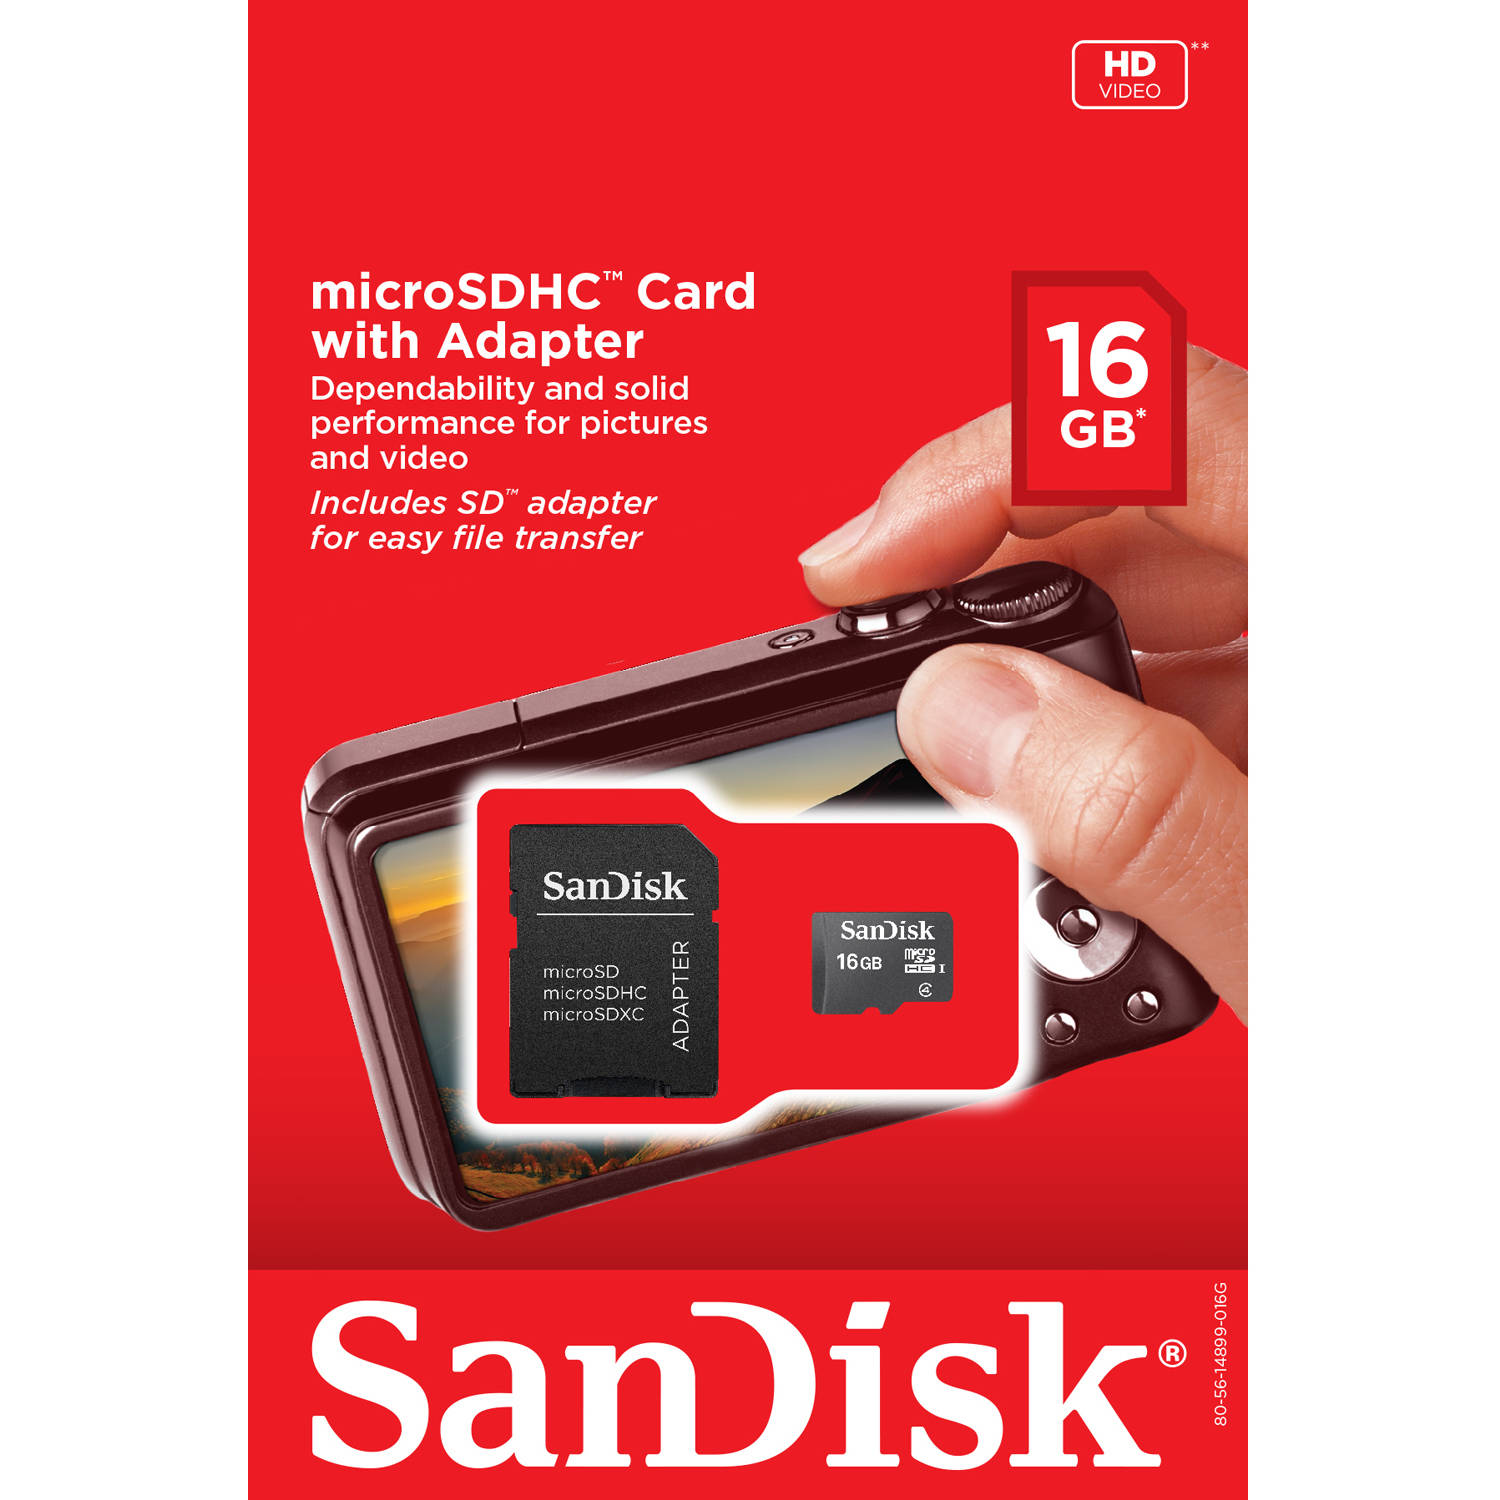 SanDisk Ultra 16GB Ultra Micro SDHC UHS-I/Class 4 Card with Adapter